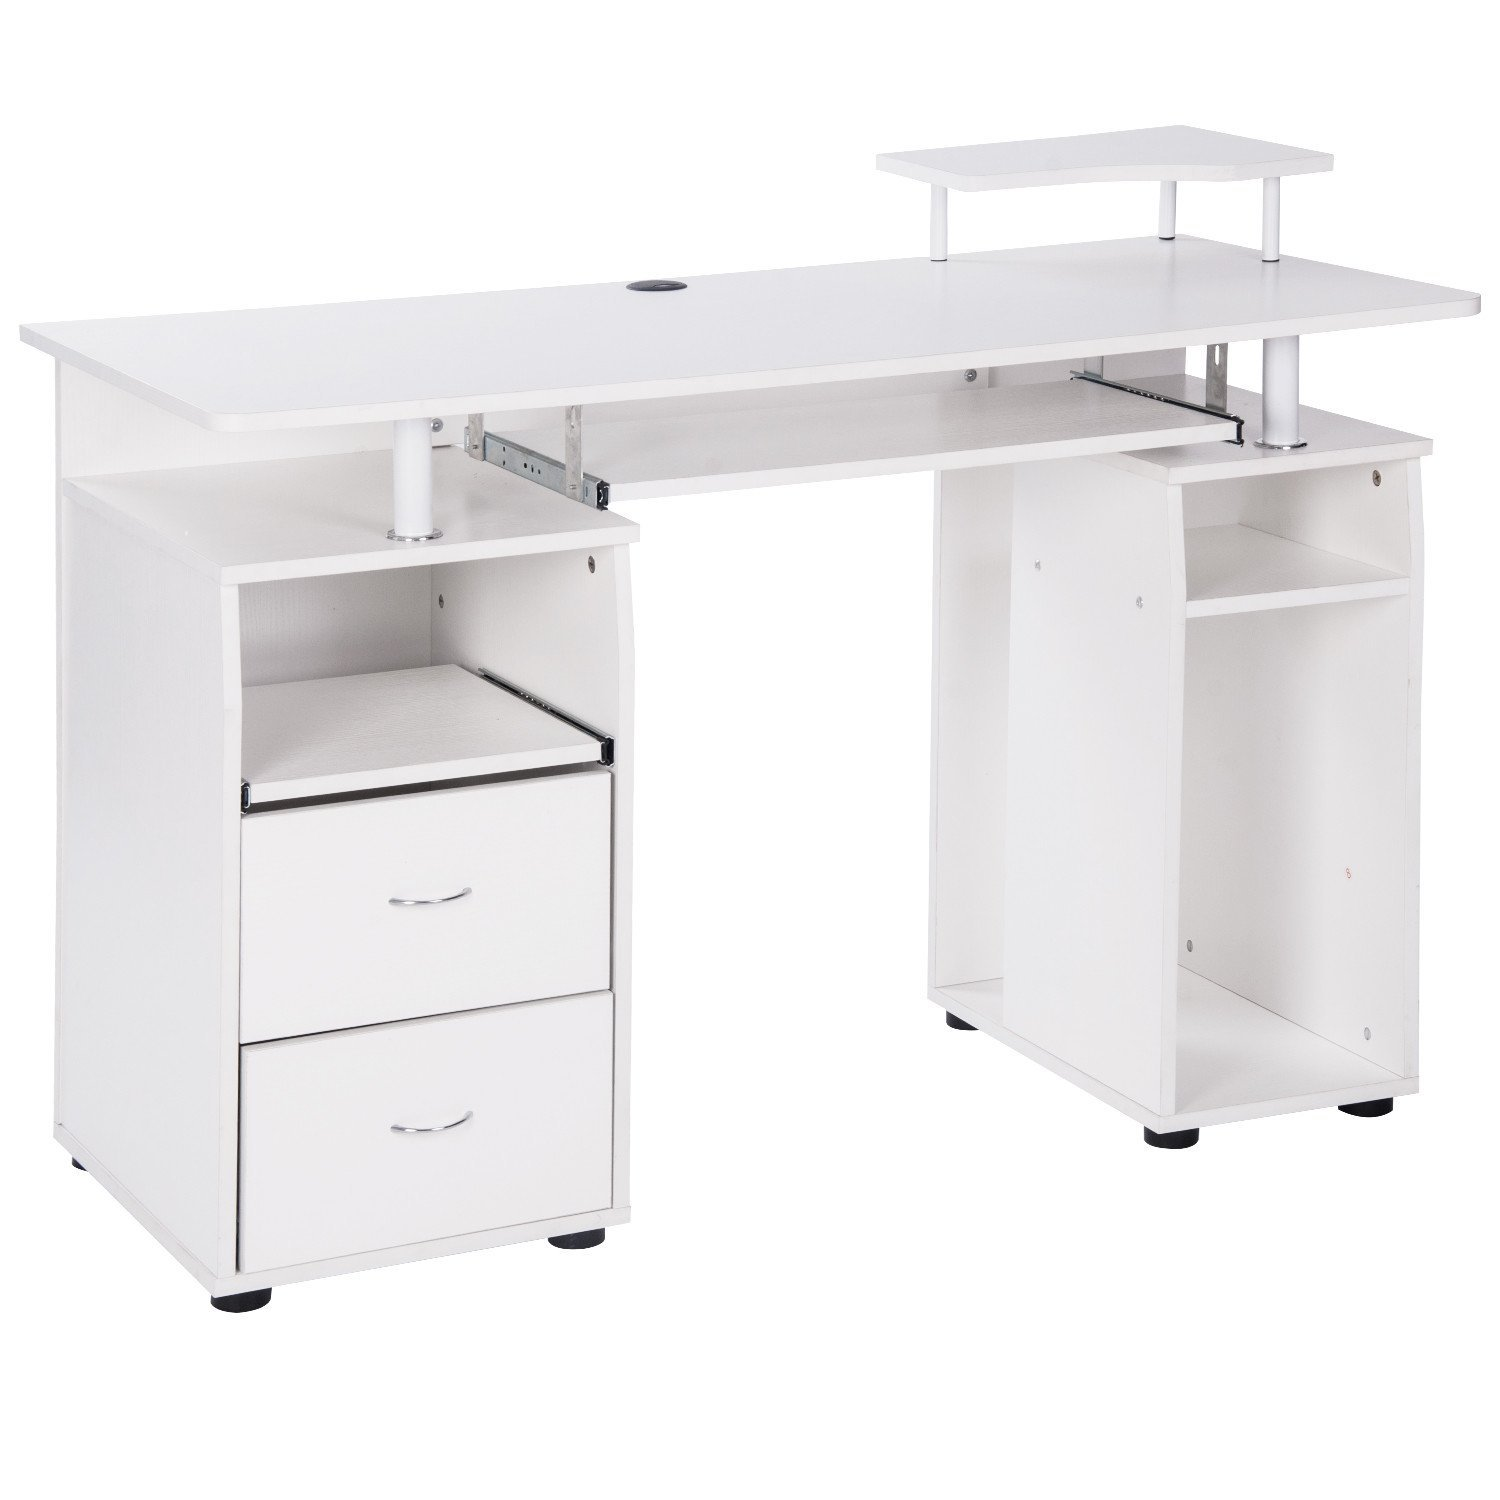 table fice full office puter of desks drawer mobile storage compact desk cheap home pc sale in small white corner and hutch for computer file furniture workstation size executive long fresh drawers with